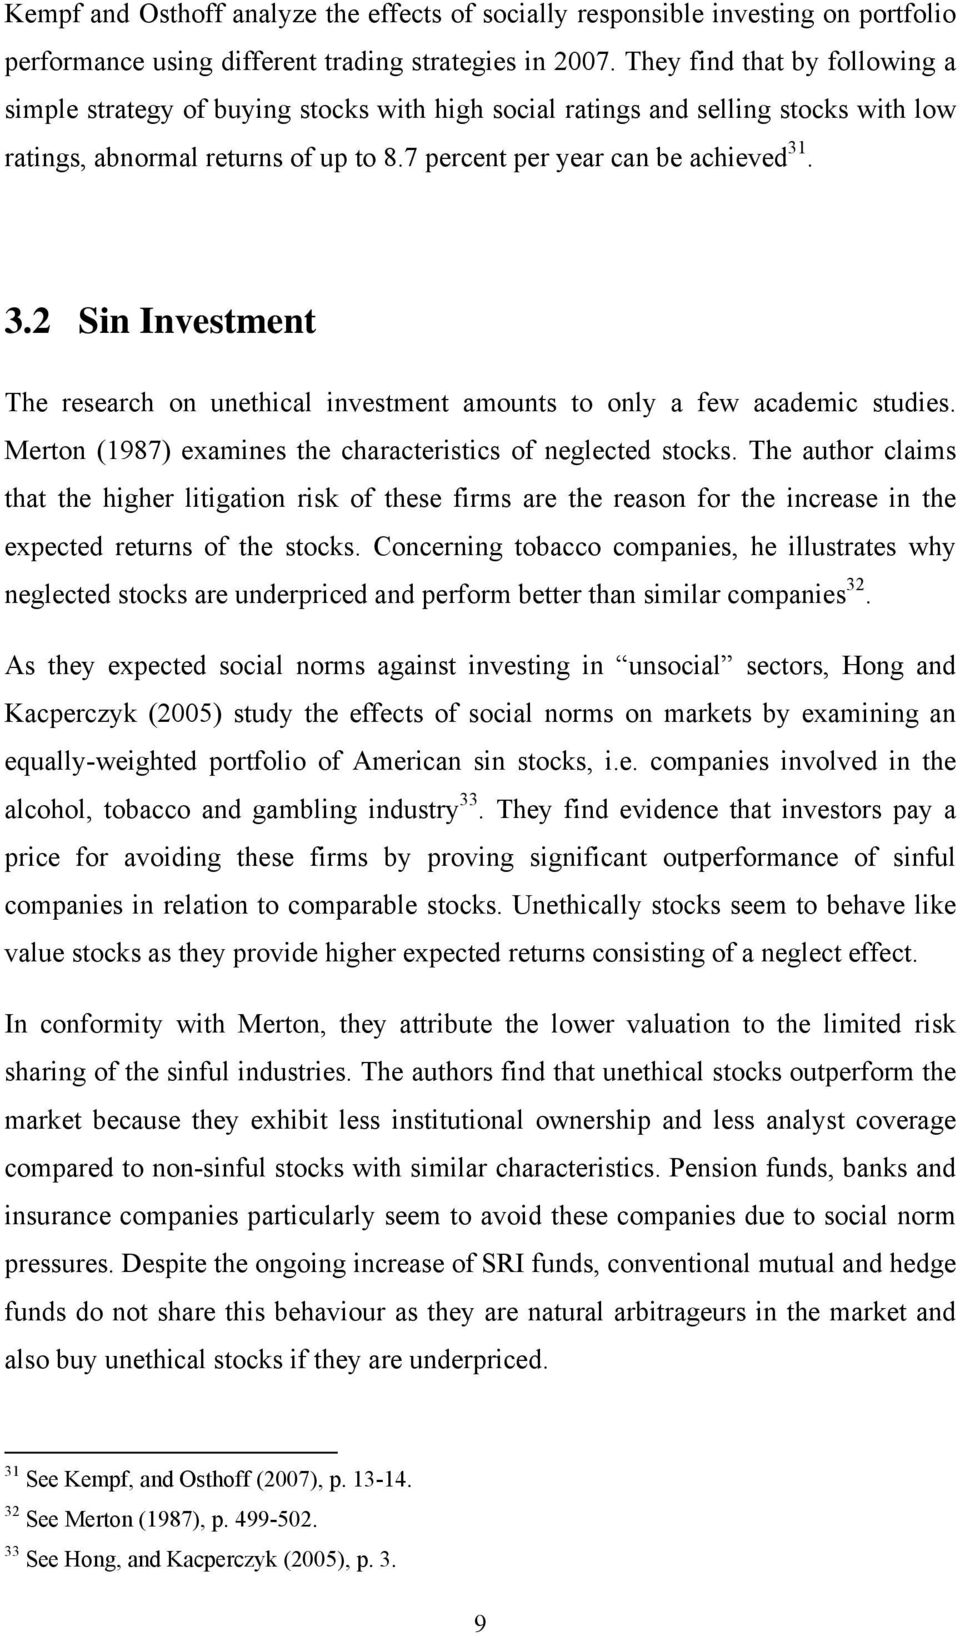 . 3.2 Sin Investment The research on unethical investment amounts to only a few academic studies. Merton (1987) examines the characteristics of neglected stocks.